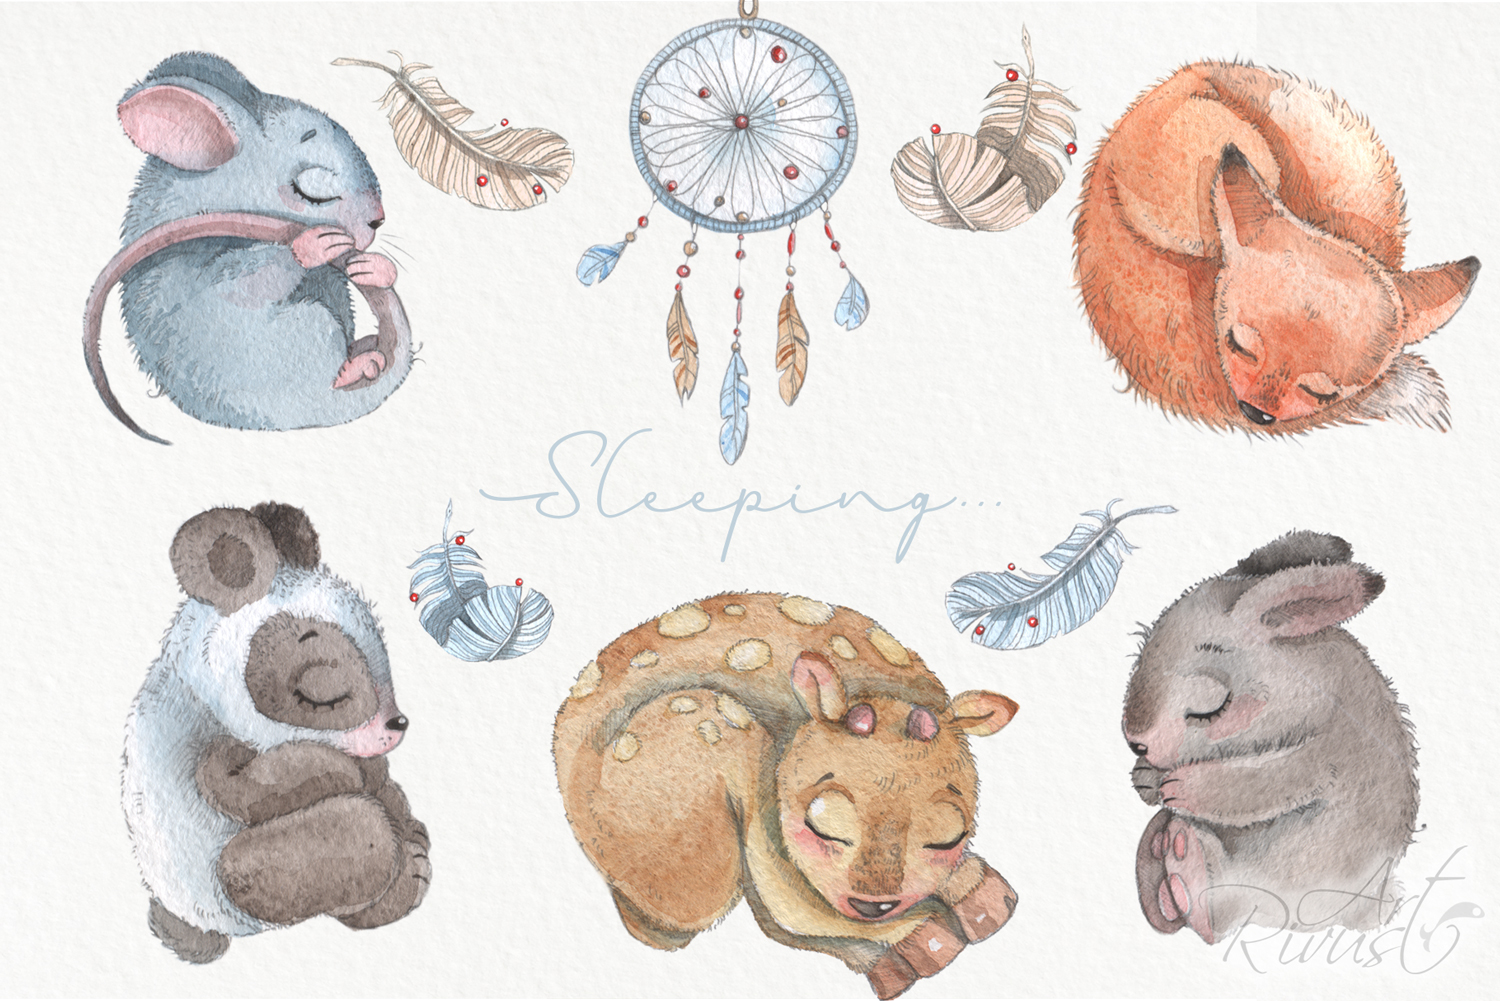 Cute sleeping baby animals watercolor clipart kit example image 1